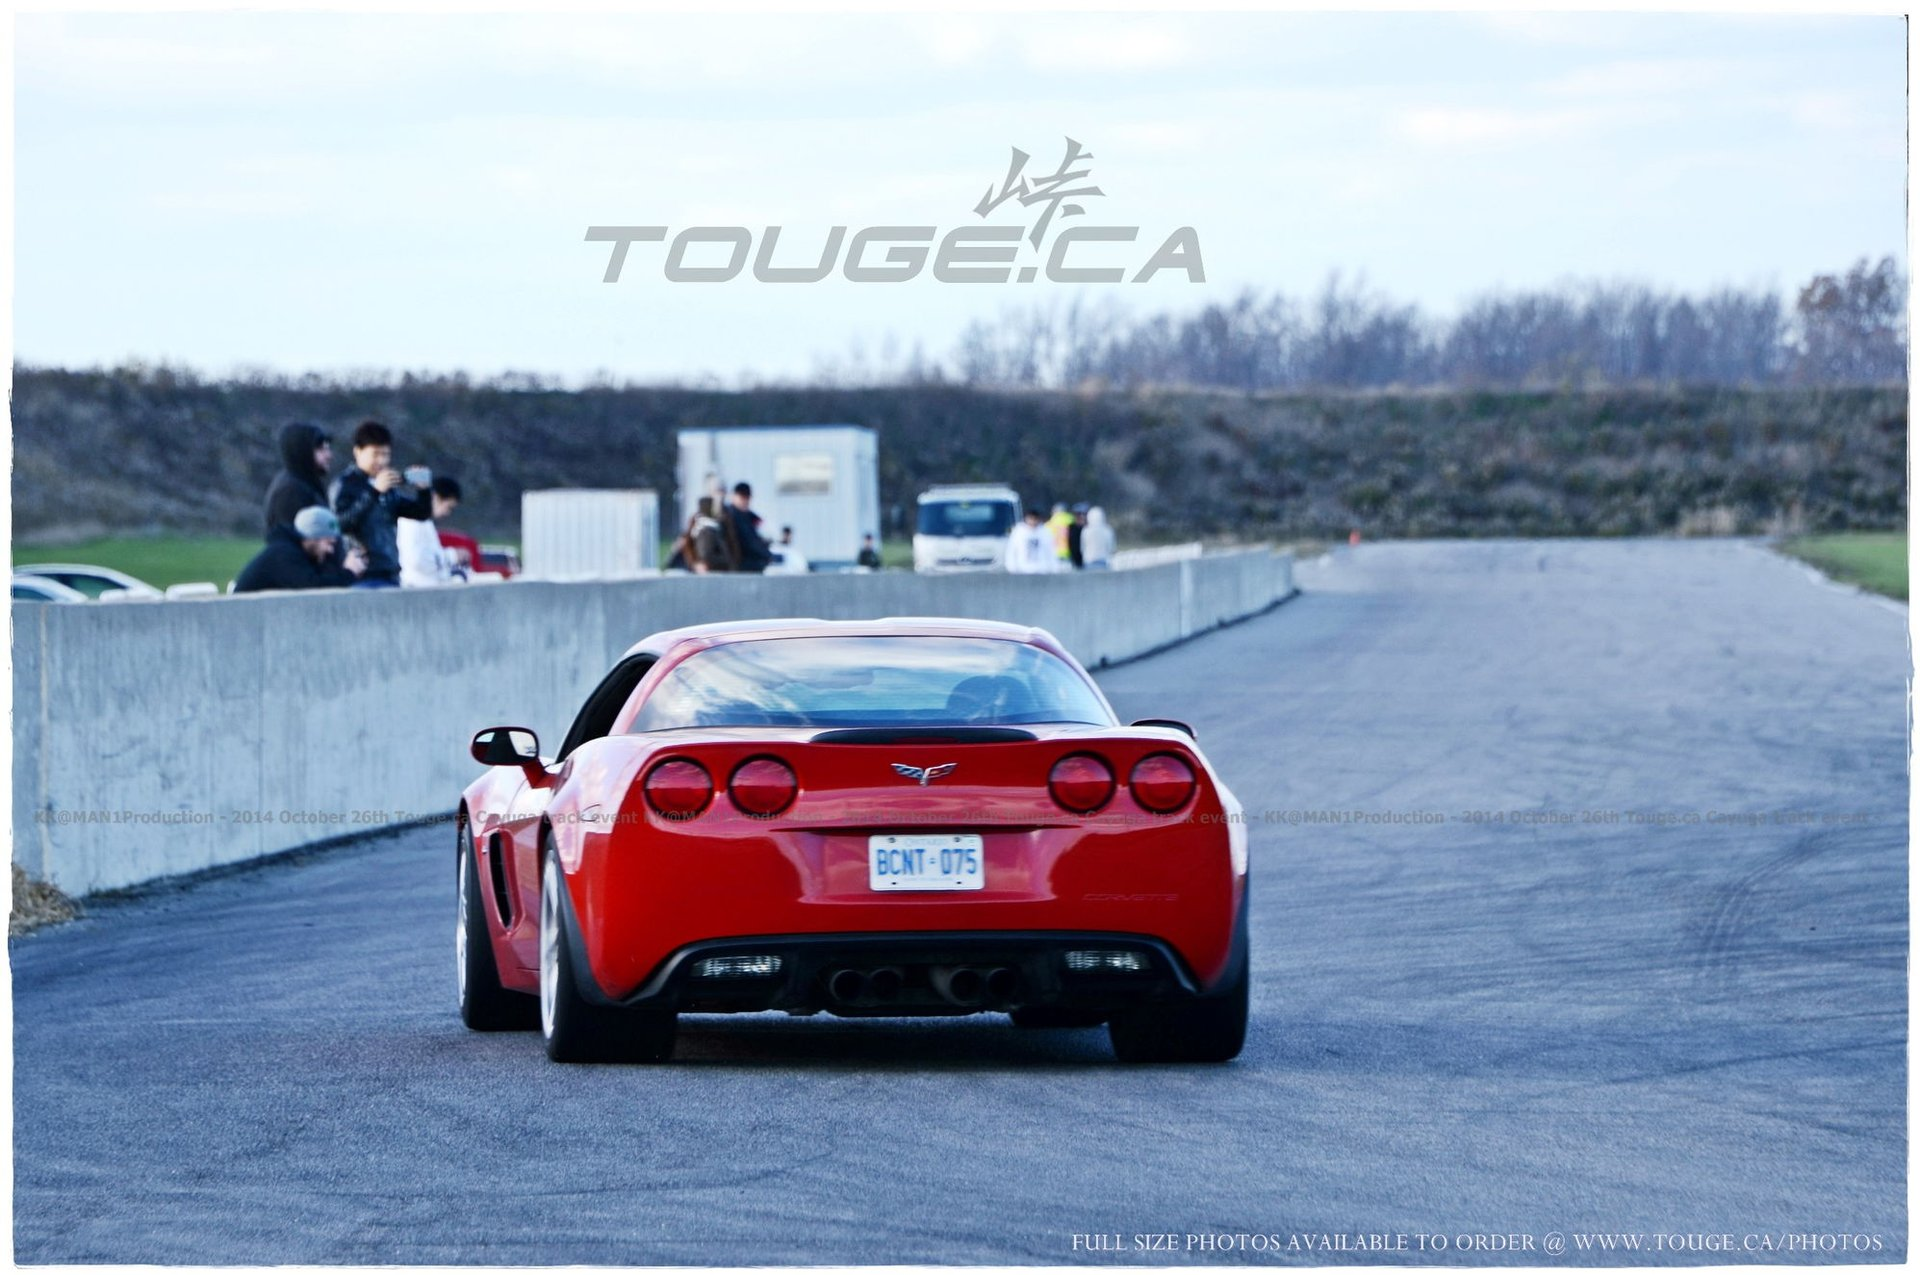 April 22nd Sunday - Touge ca Cayuga TMP track event 5-8pm #1 of 20+